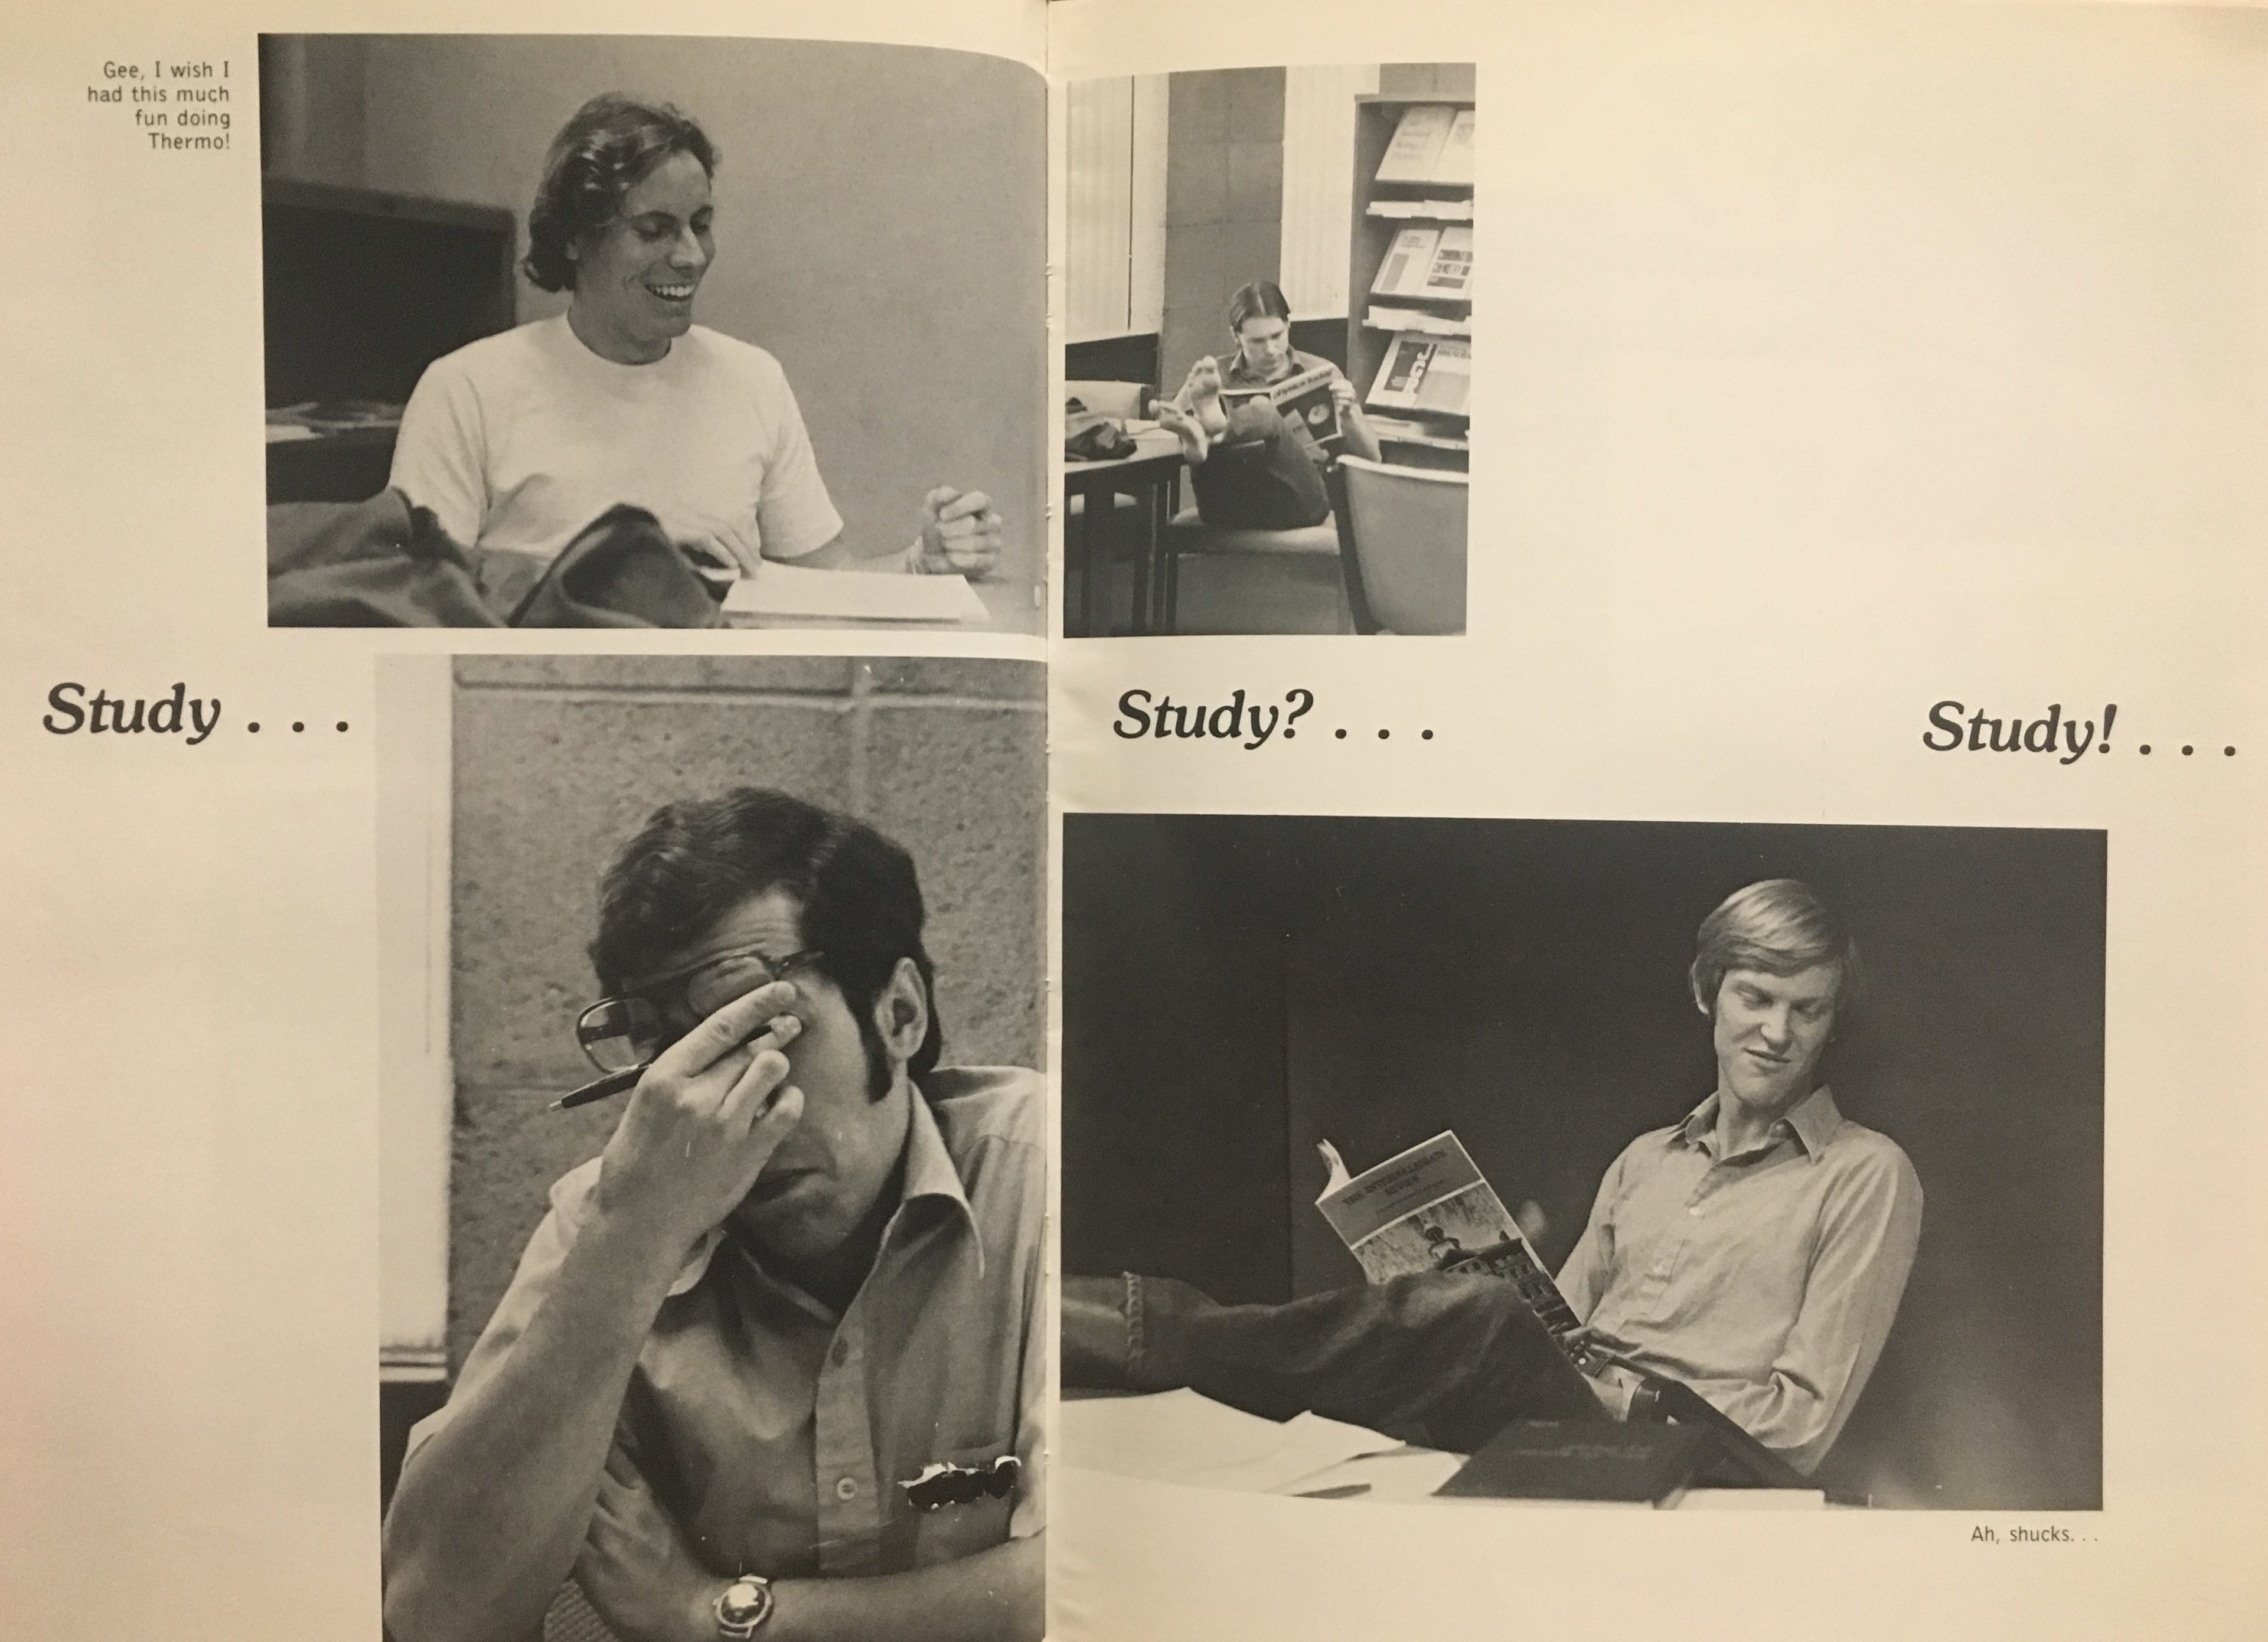 A yearbook page demonstrating the studying done across the class years